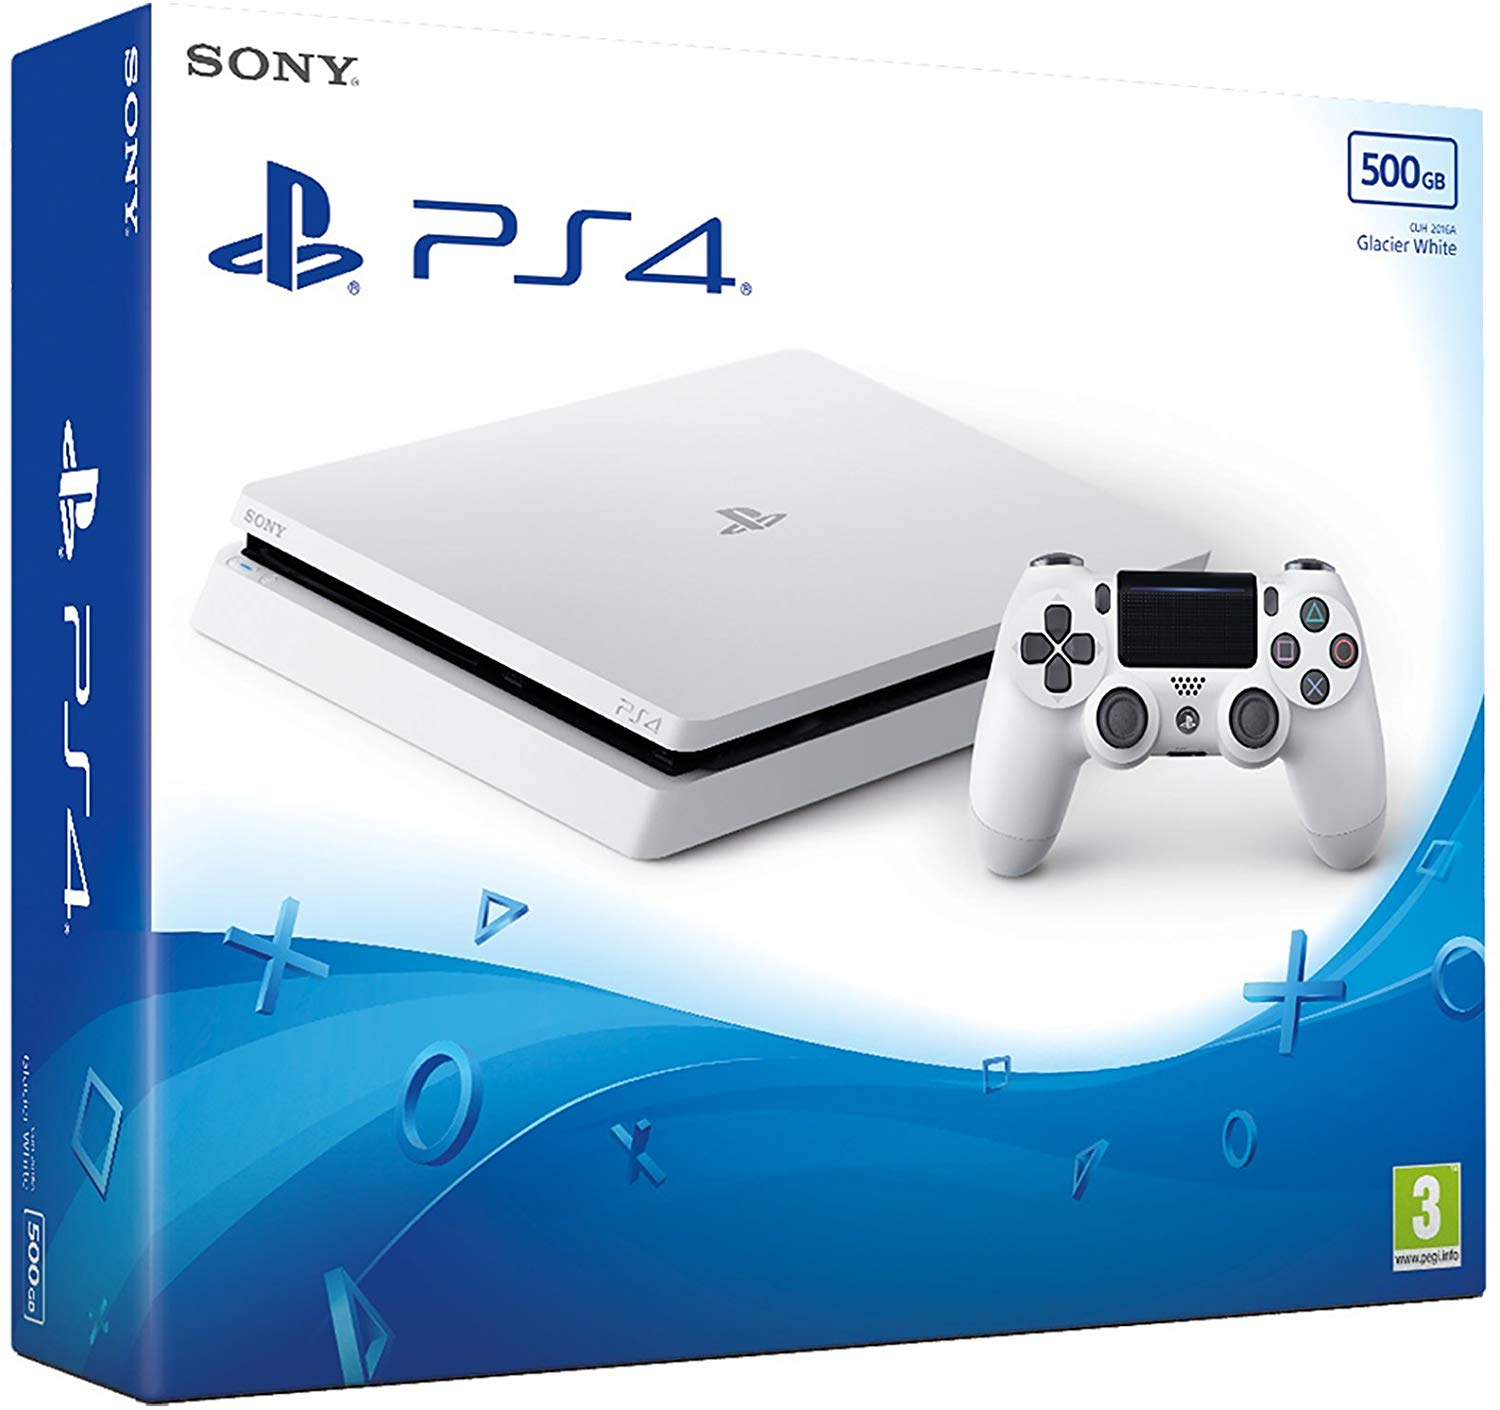 Sony PlayStation 4 500GB - White PS4 New